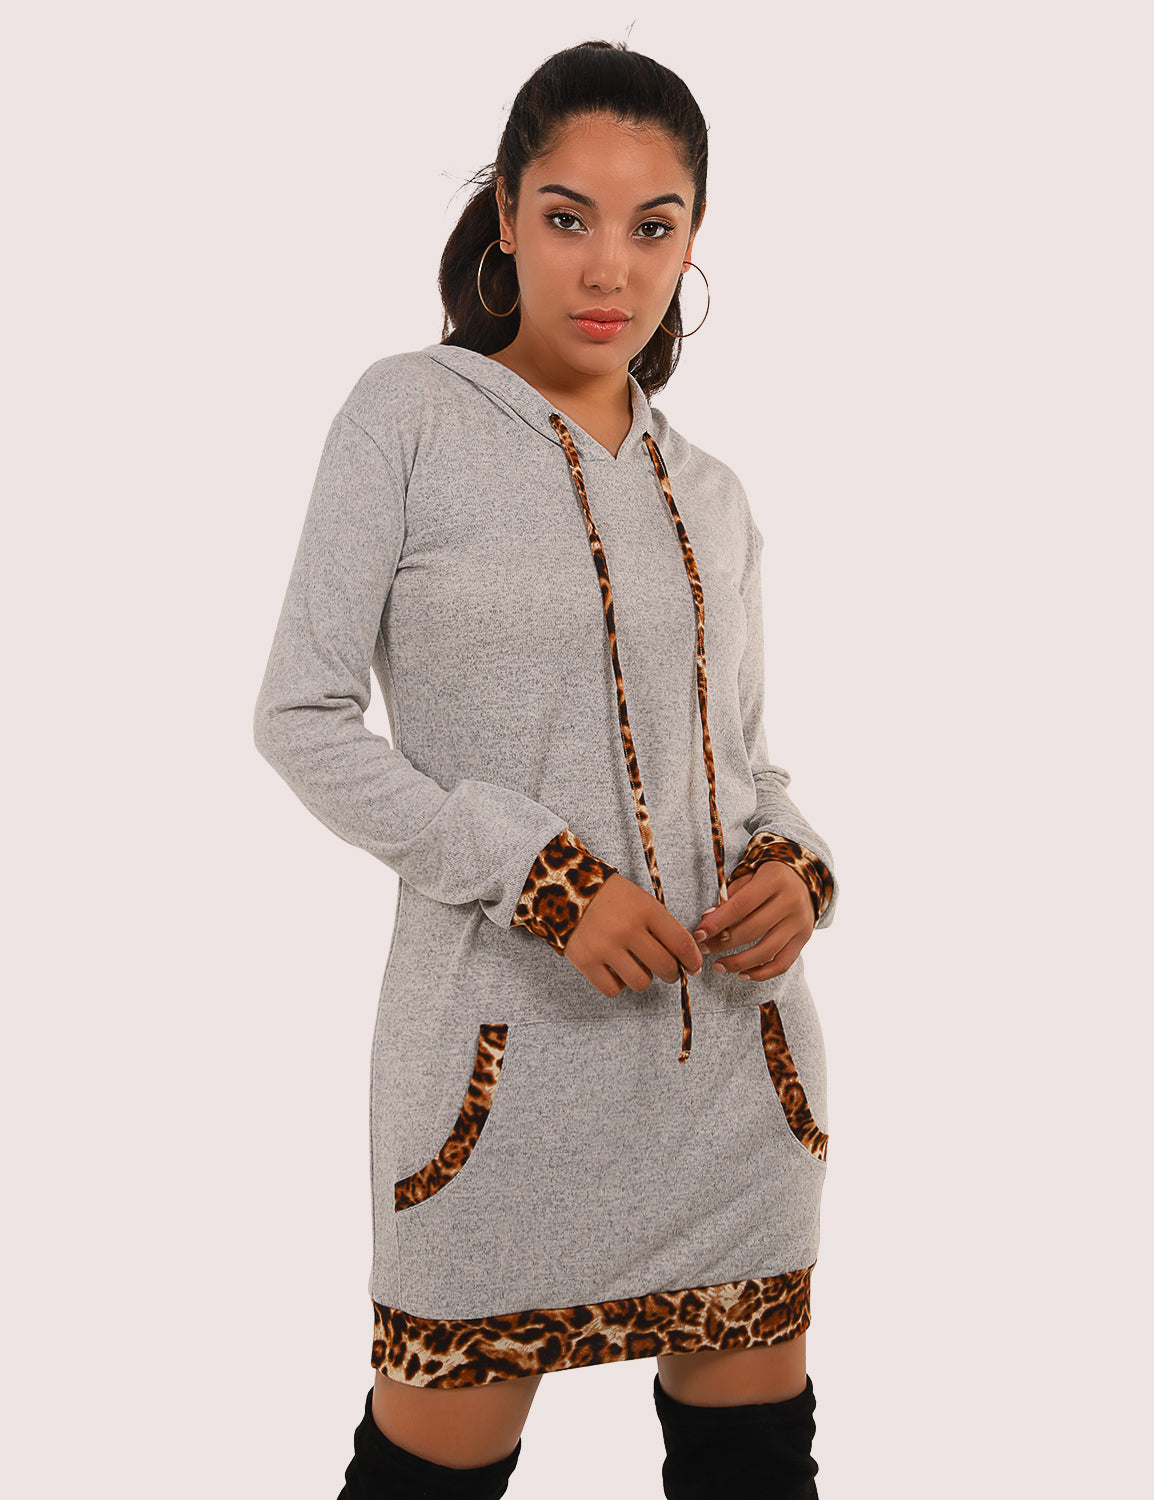 Blooming Jelly_Wild Leopard Patchwork Pouch Pocket Long Hoodie_Gray Leopard Patchwork_305005_07_Chic Wild Outdoor Long_Tops_Hoodie